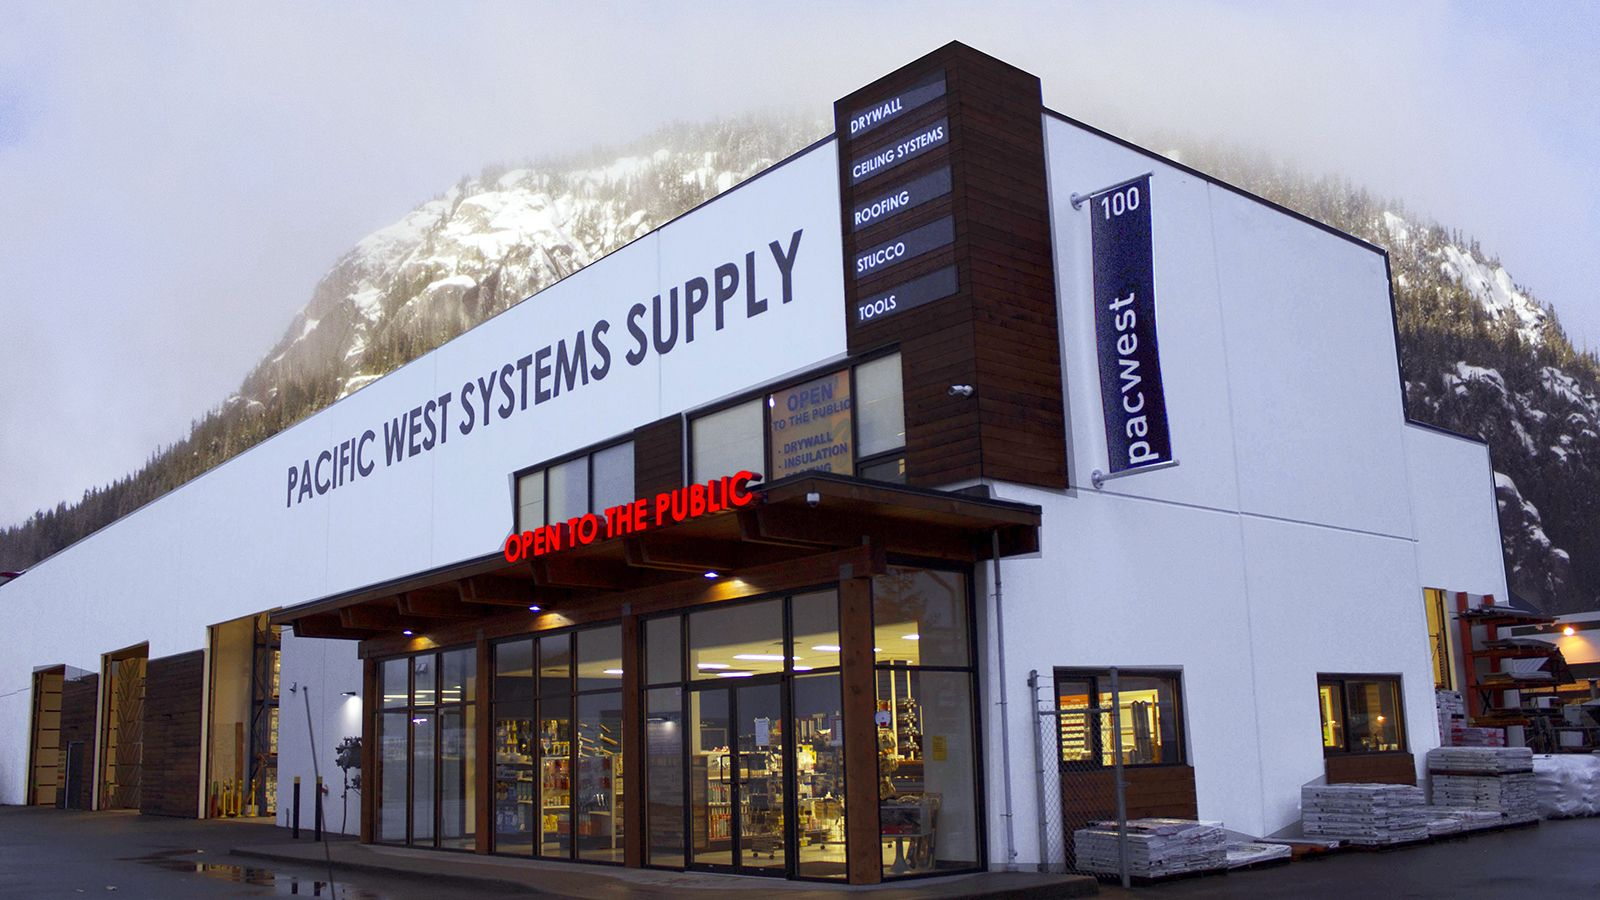 Pacific West Systems Supply Ltd